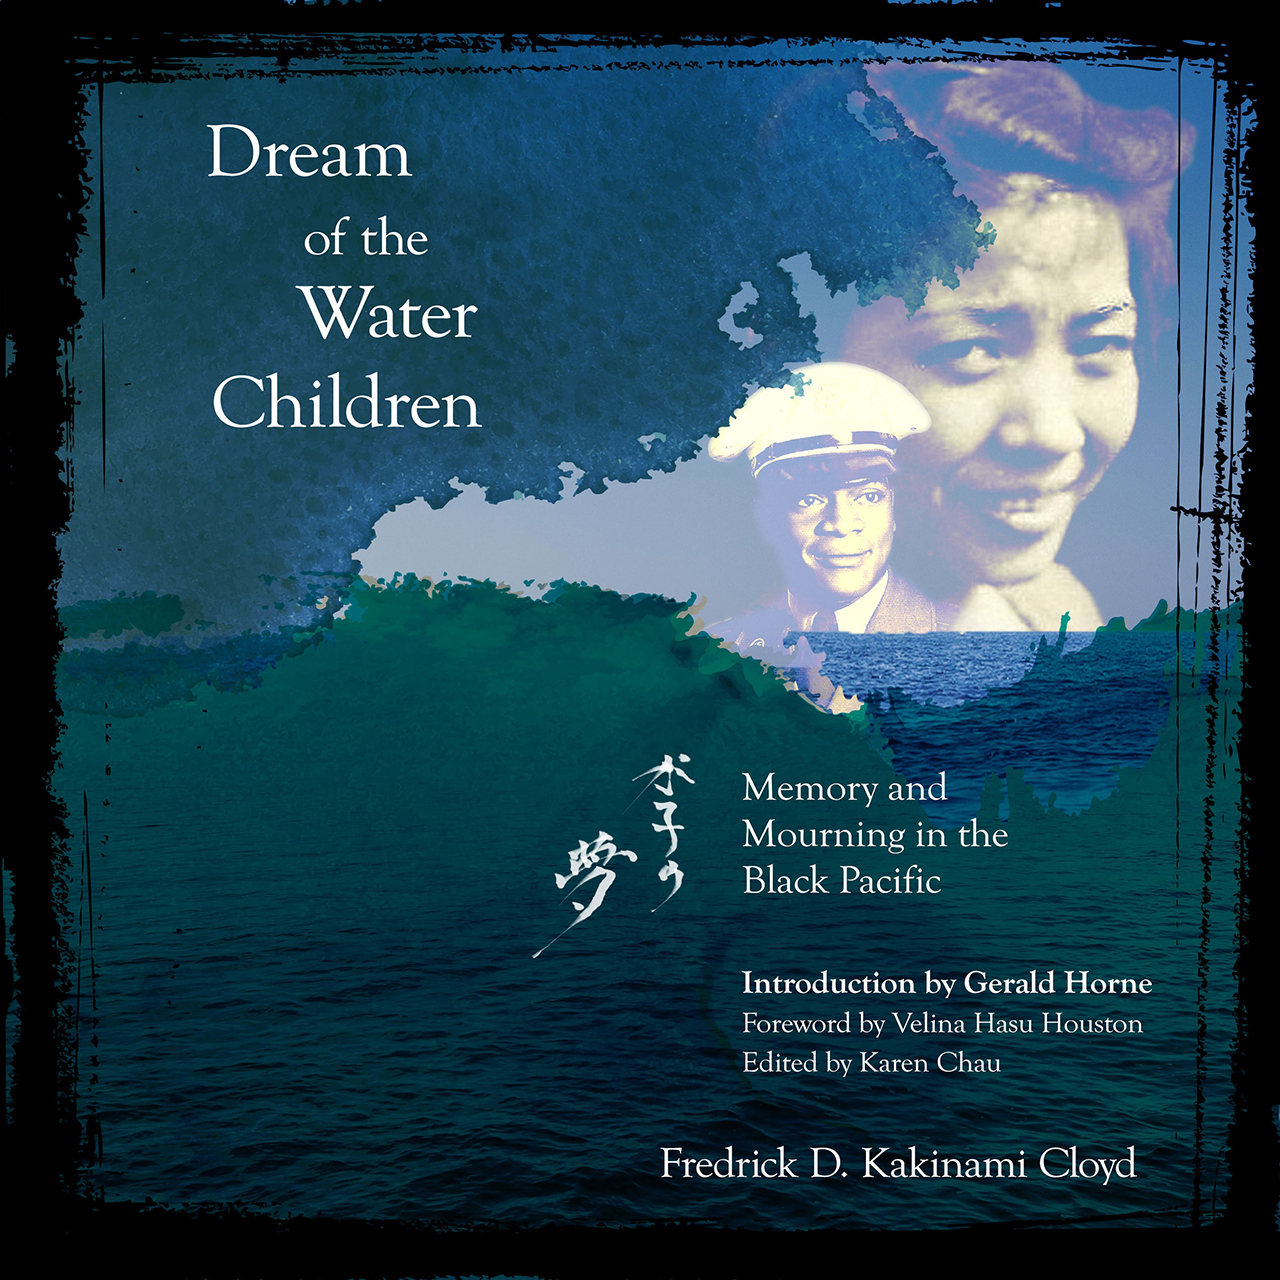 Dream of the Water Children: Memory and Mourning in the Black Pacific